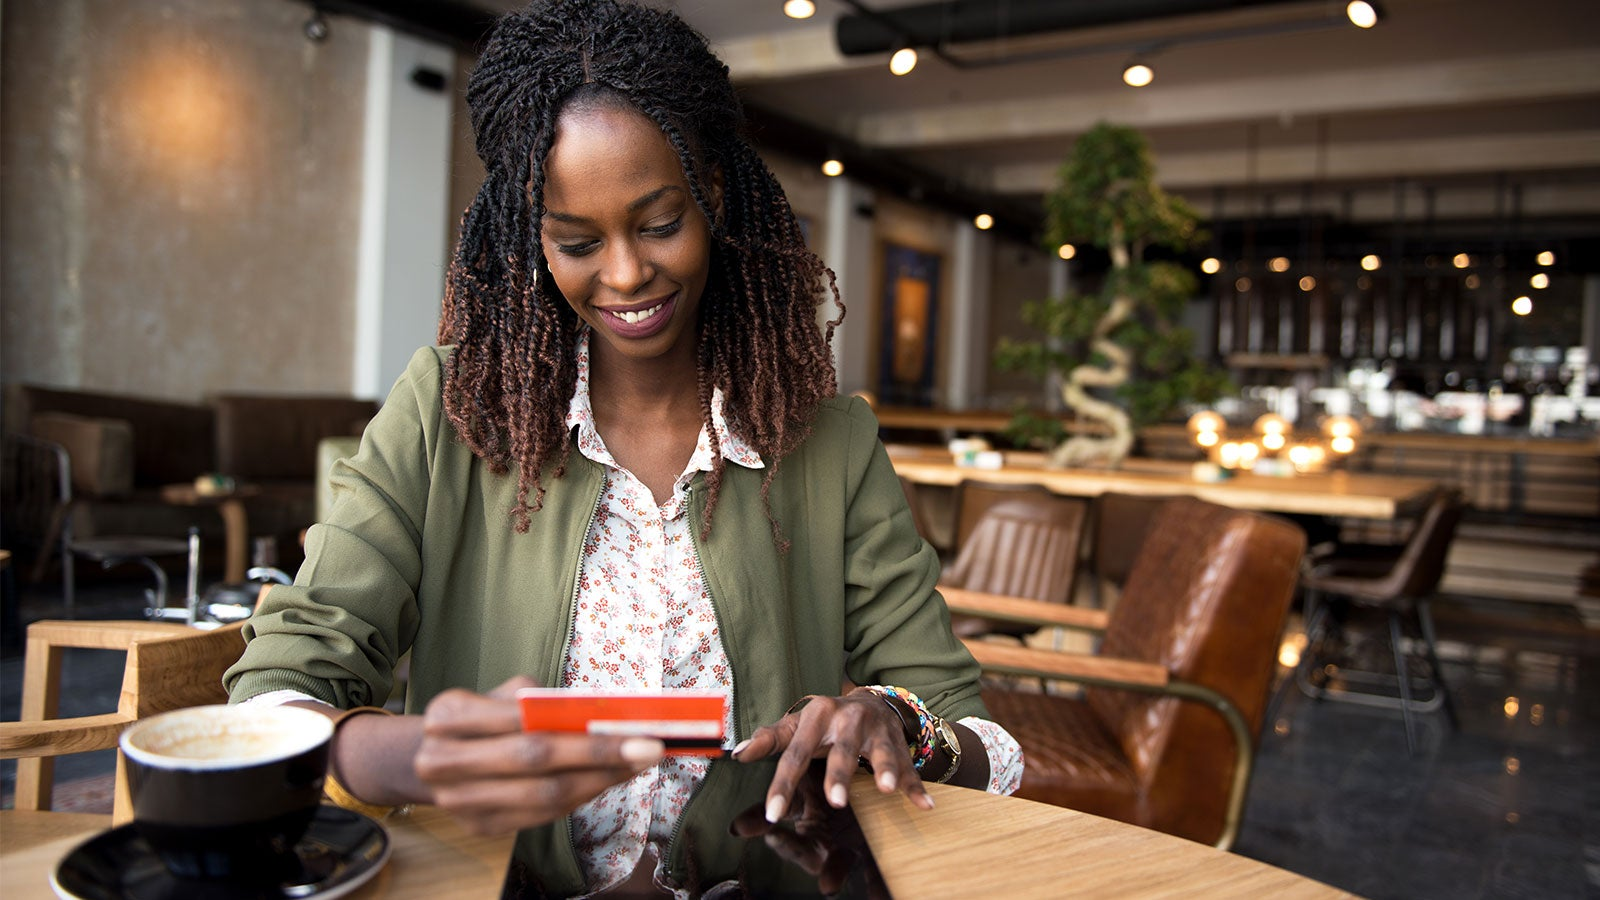 Woman at coffee shop putting credit card in her purse